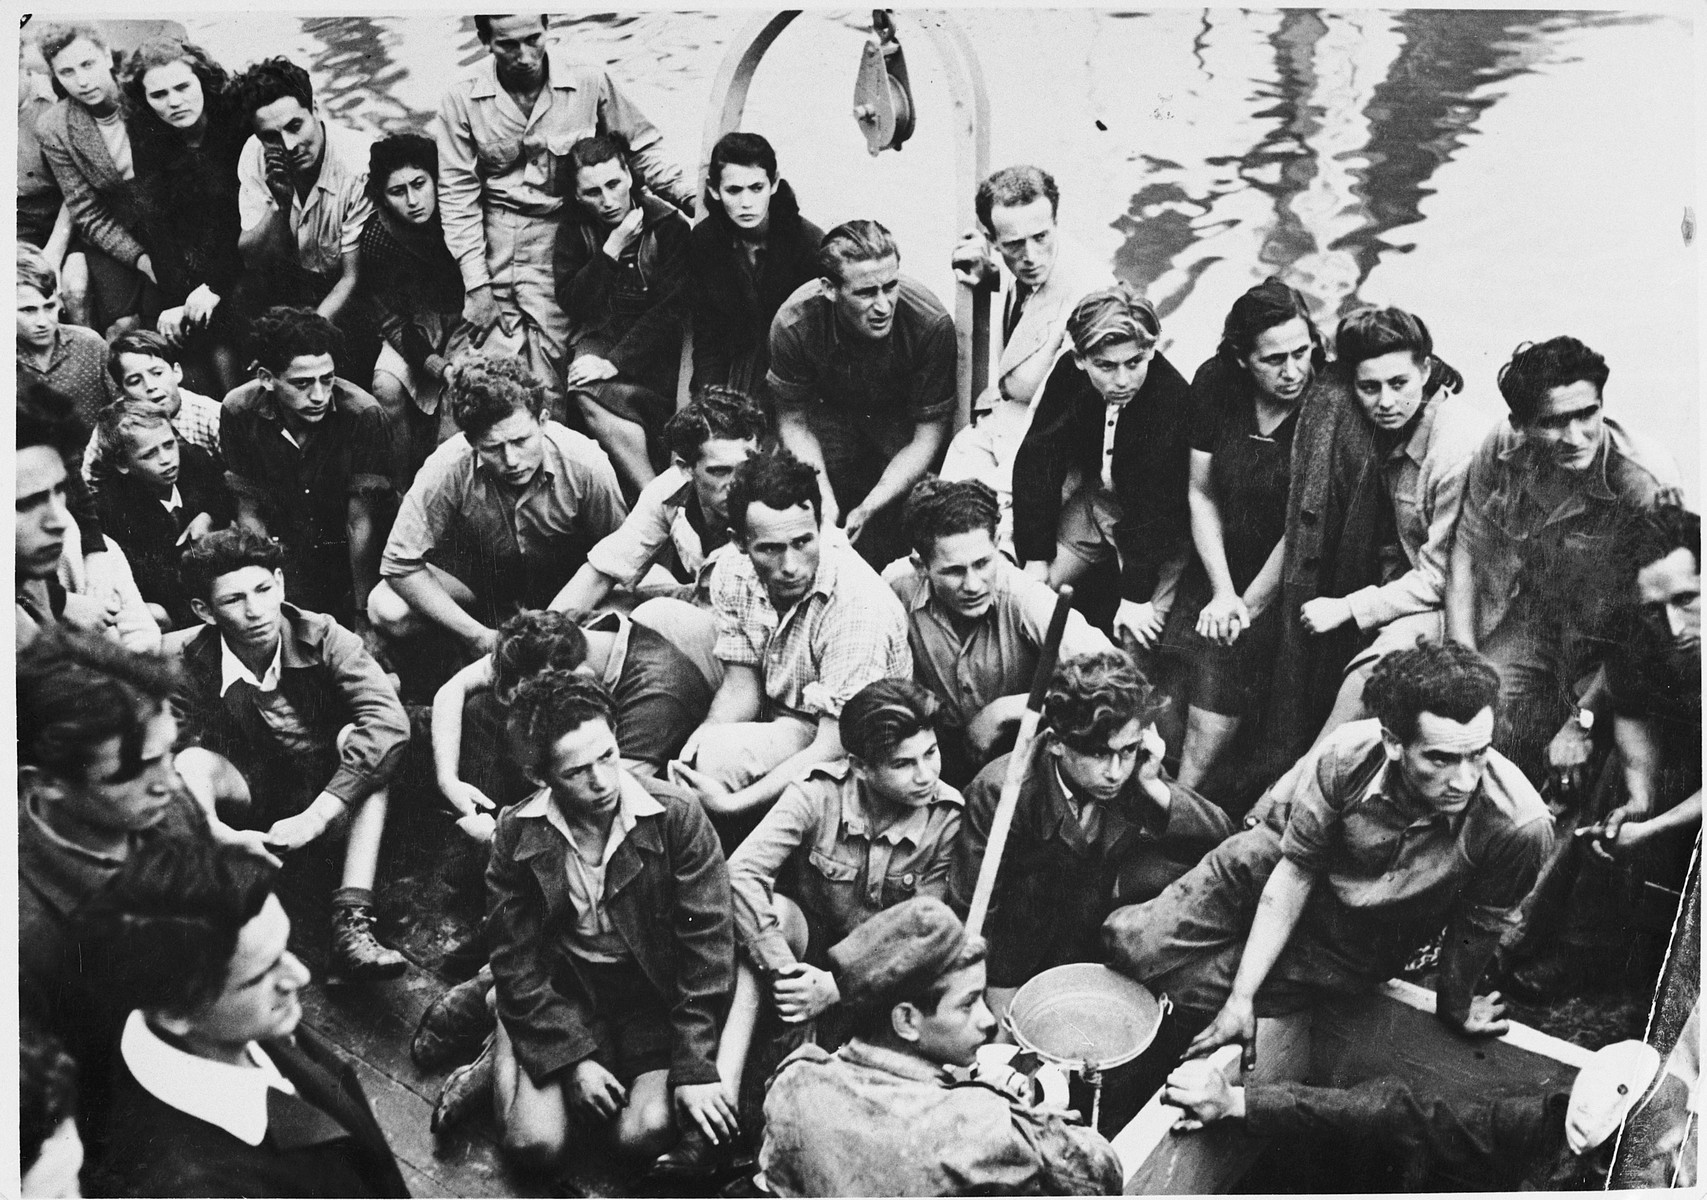 Jewish DPs who are members of the Migdalor hachshara, a maritime Zionist collective in Fano, Italy, crowd on the deck of a fishing boat.  Among those pictured are Kozik (bottom, left); middle row (right to left): Sevek, unknown, Zucker. and Vladek.  Top row (right to left): Daniel Sarchuk, Sigmund Zelig Braun, Eshter Nessel, her mother, unknown, Yaakov Neihof, Patt, Rusha, Zlatka, Karol, Roza, Yidl, Leah Rosenberg, and Chana Beler.